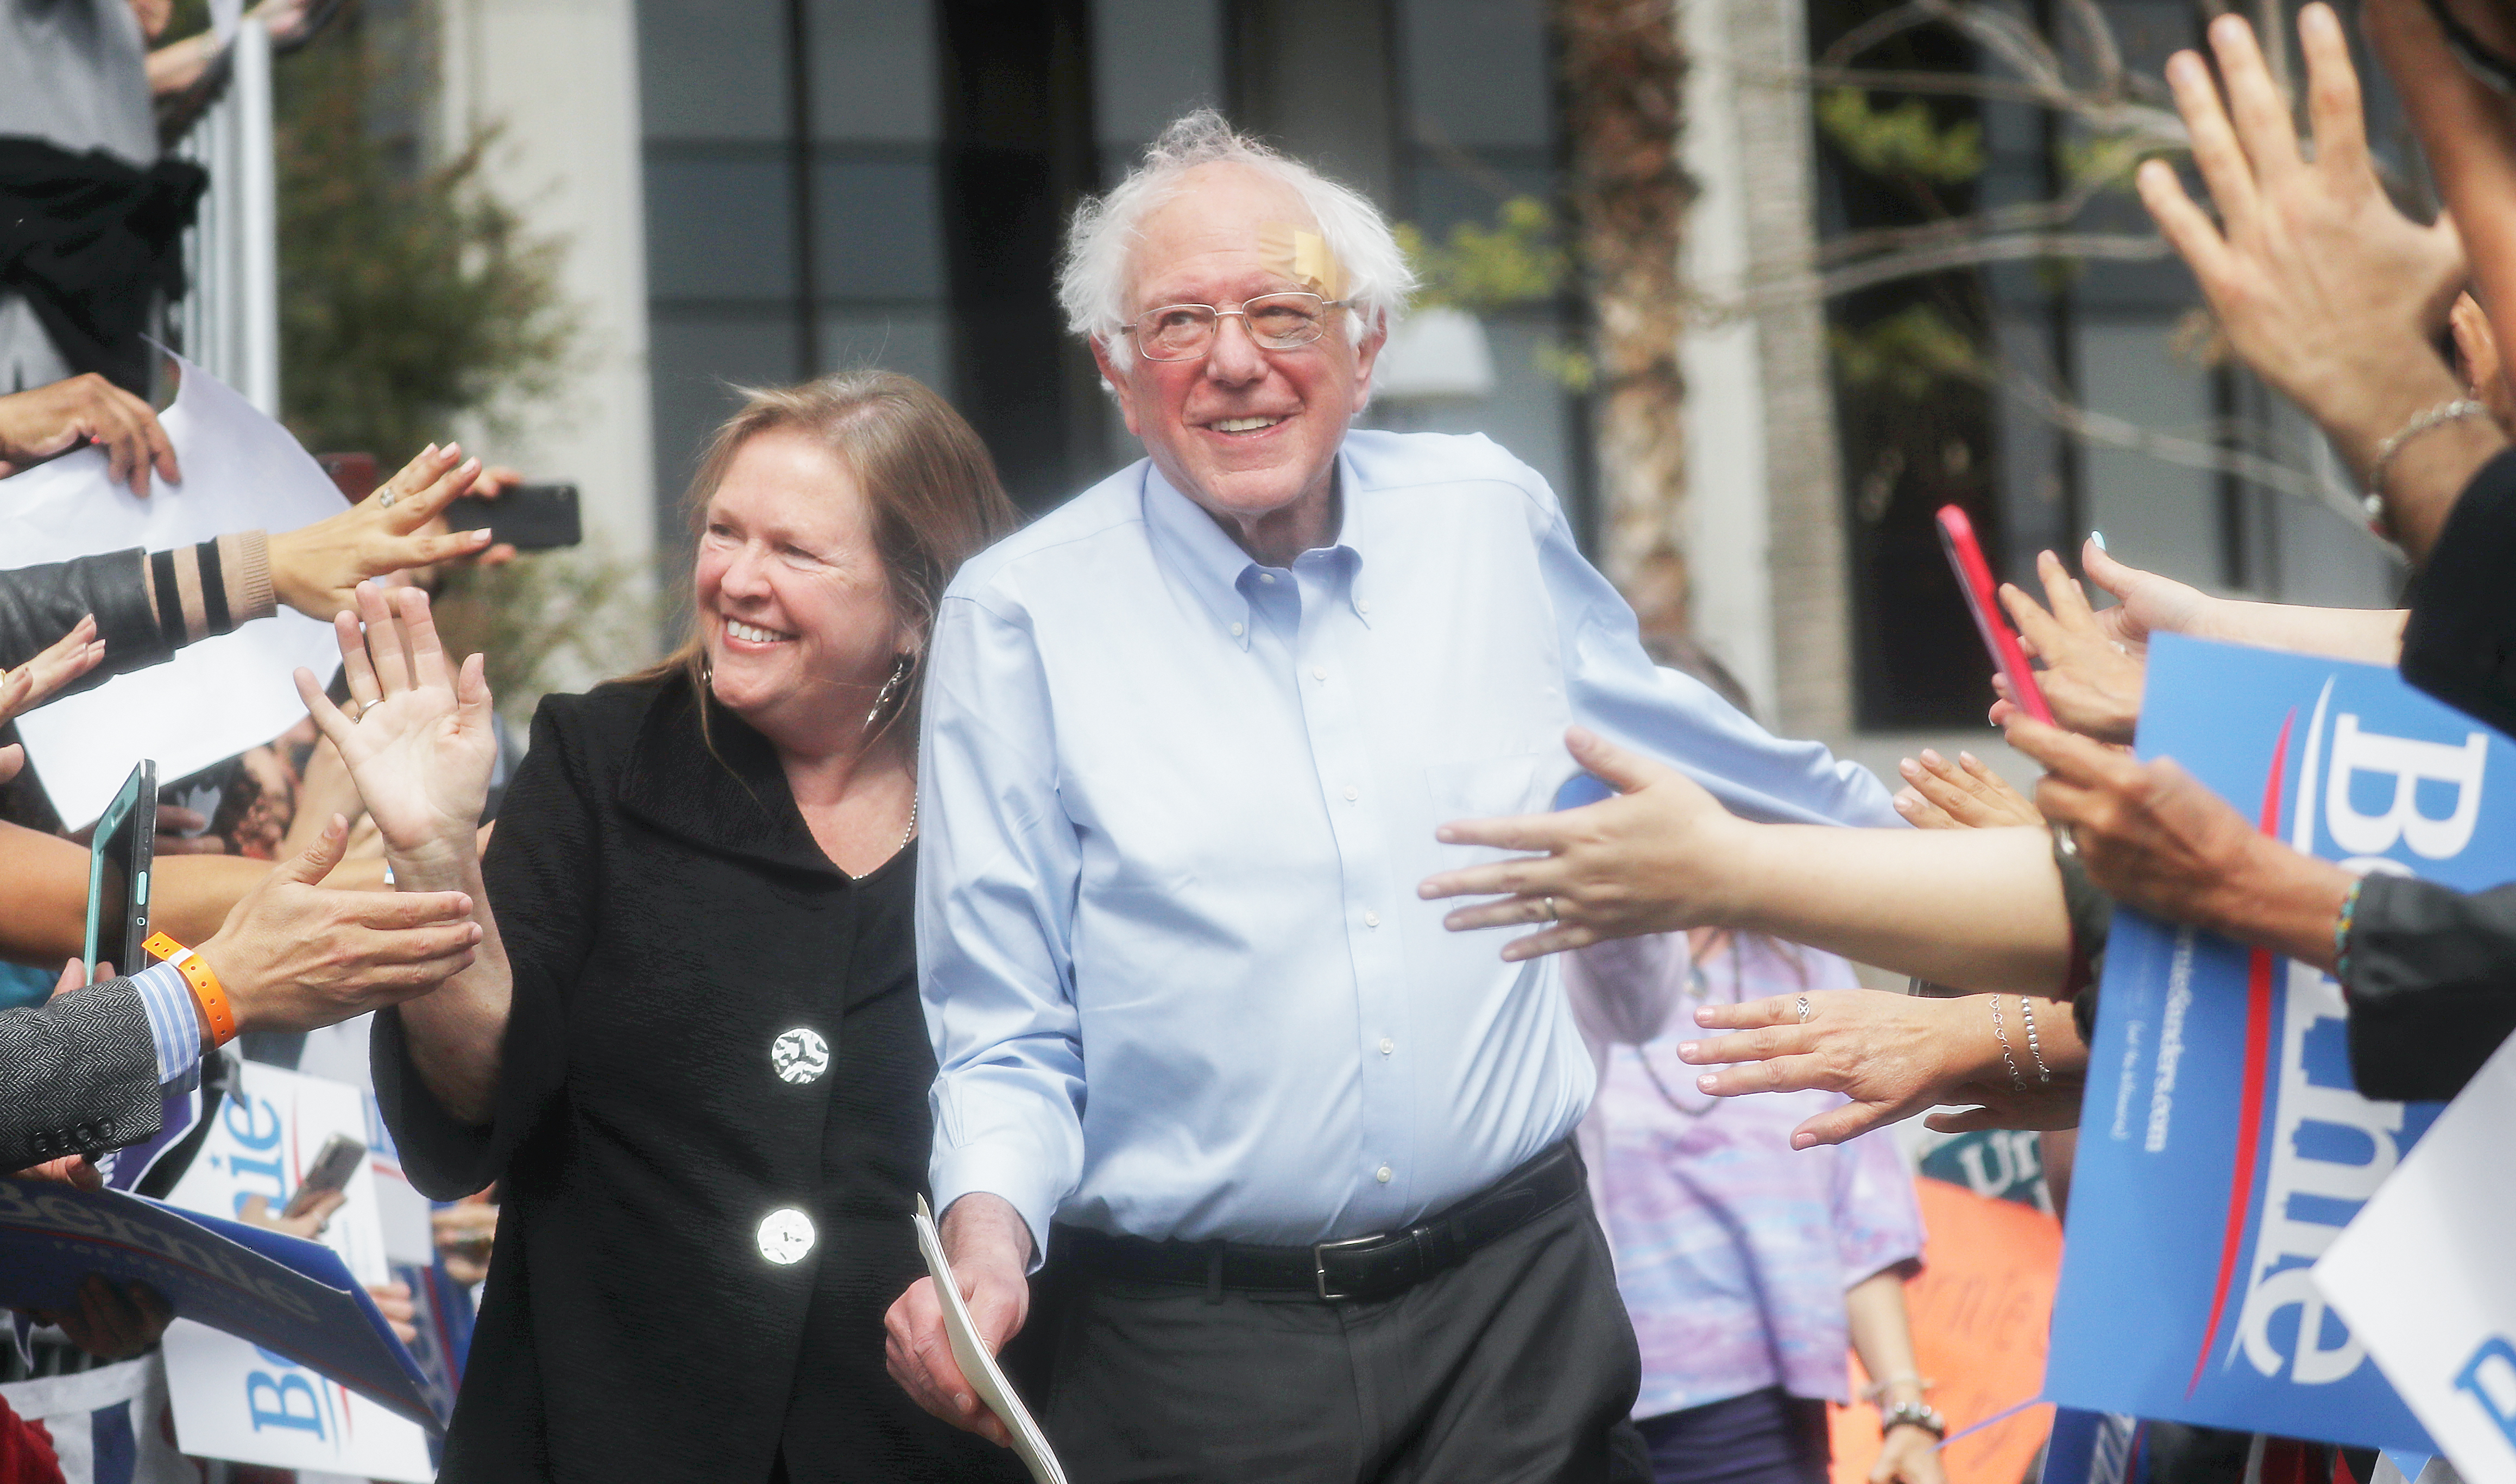 LOS ANGELES, CALIFORNIA - MARCH 23: 2020 Democratic presidential candidate U.S. Sen. Bernie Sanders (I-VT), C, arrives with his wife Jane at a campaign rally in Grand Park on March 23, 2019 in Los Angeles, California. Sanders, who is so far the top Democratic candidate in the race, is making the rounds in California which is considered a crucial 'first five' primary state by the Sanders campaign. California will hold on early primary on March 3, 2020. (Photo by Mario Tama/Getty Images)